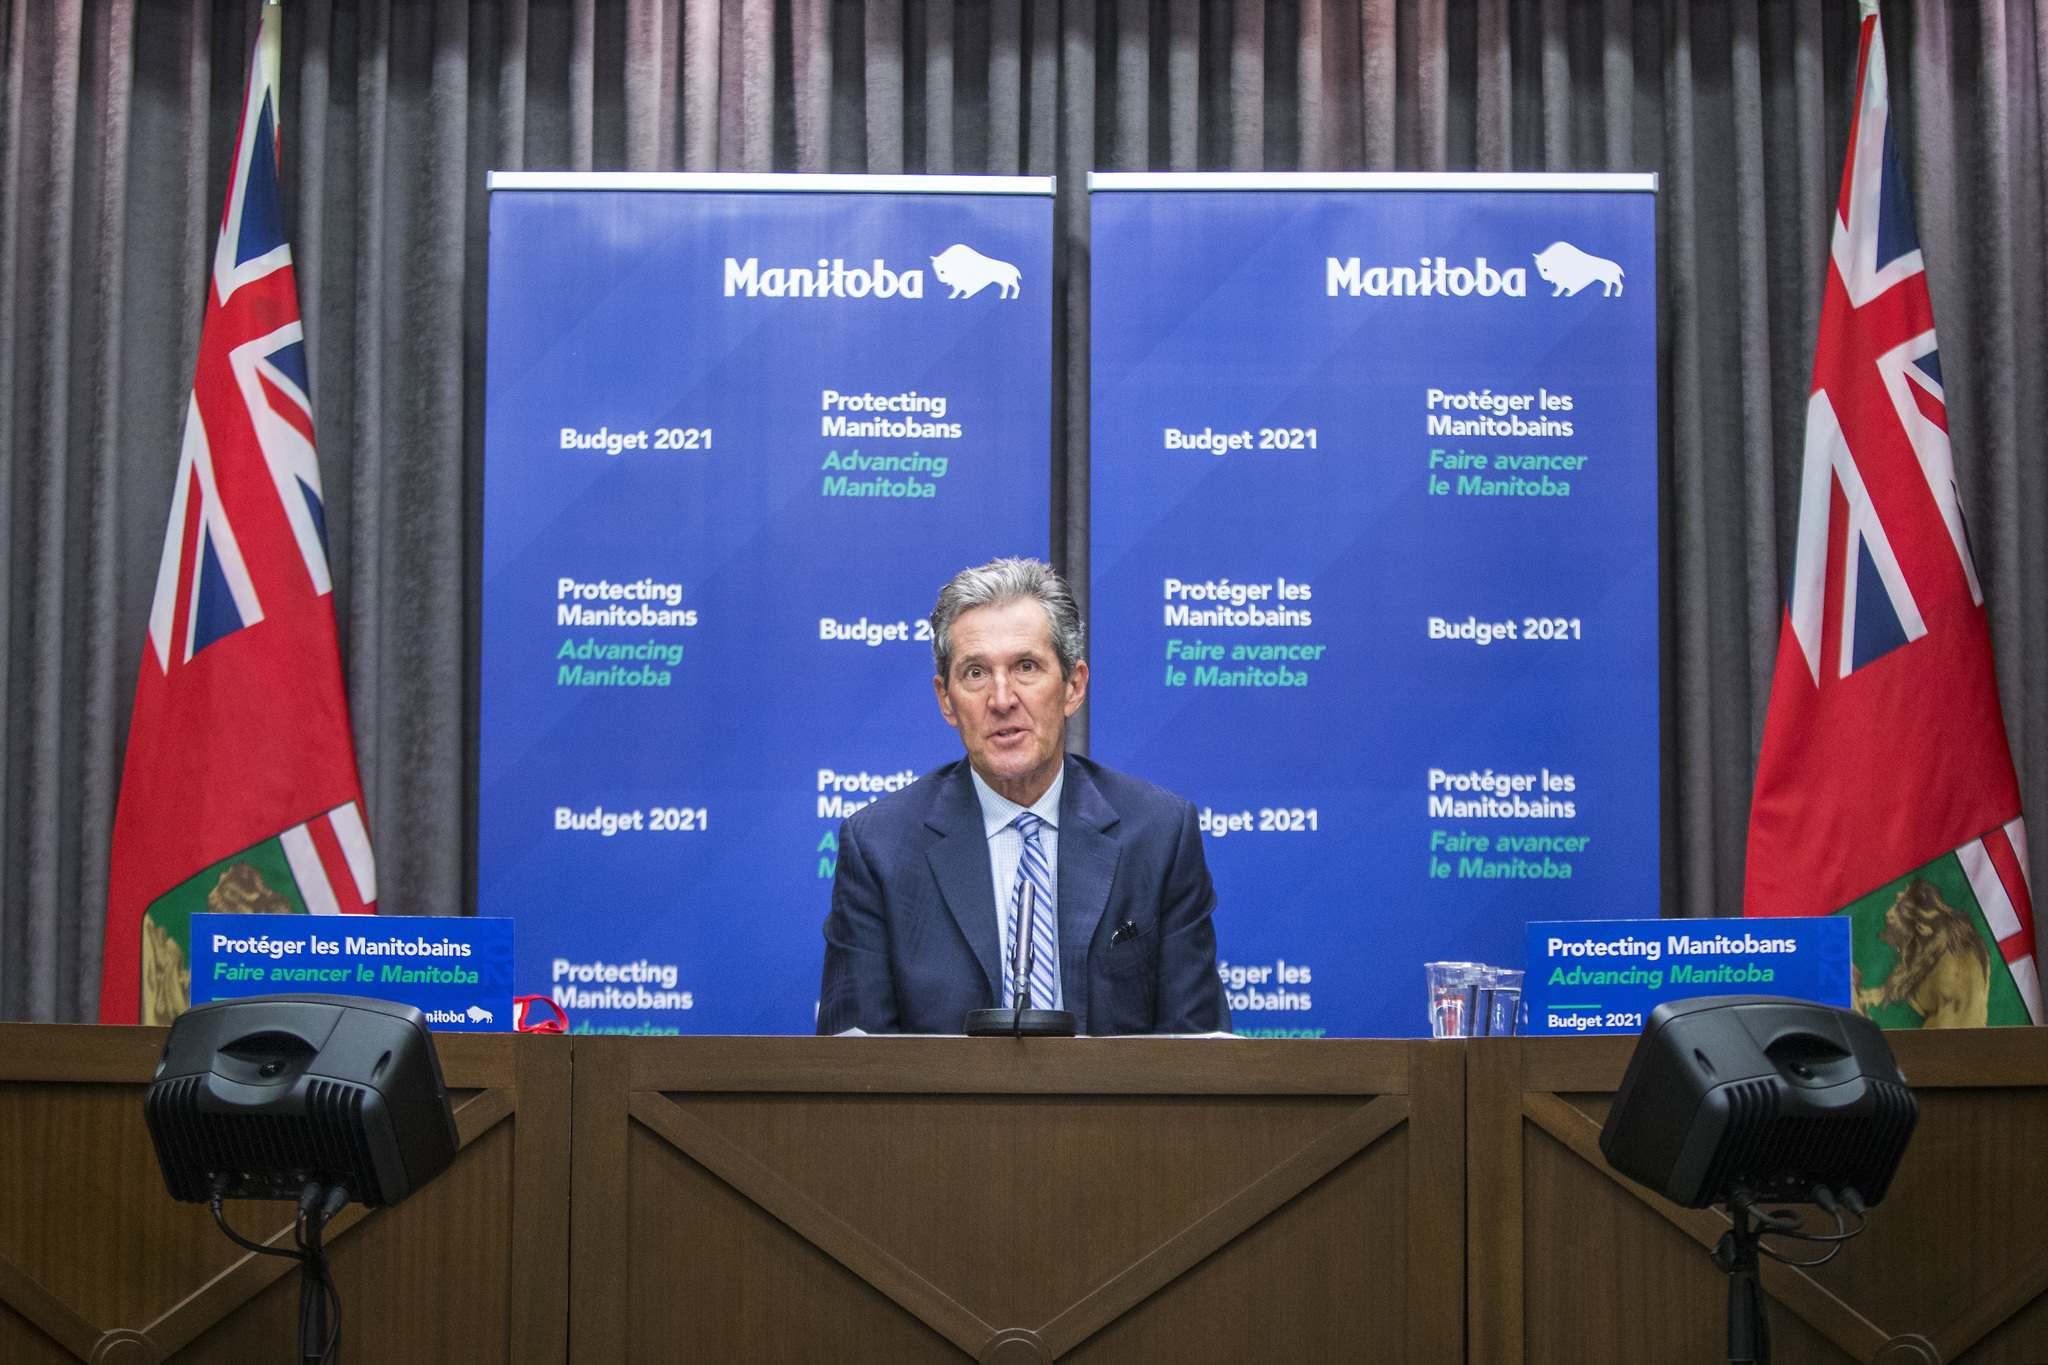 Premier Brian Pallister's demeanour and personal response to pandemic events likely caused him to fall out of favour with many voters. In public, the premier has been abrasive and critical of others, lashing out at the federal government over vaccine supplies and at some Manitobans for failing to observe public health guidelines. (Mikaela MacKenzie / Winnipeg Free Press)